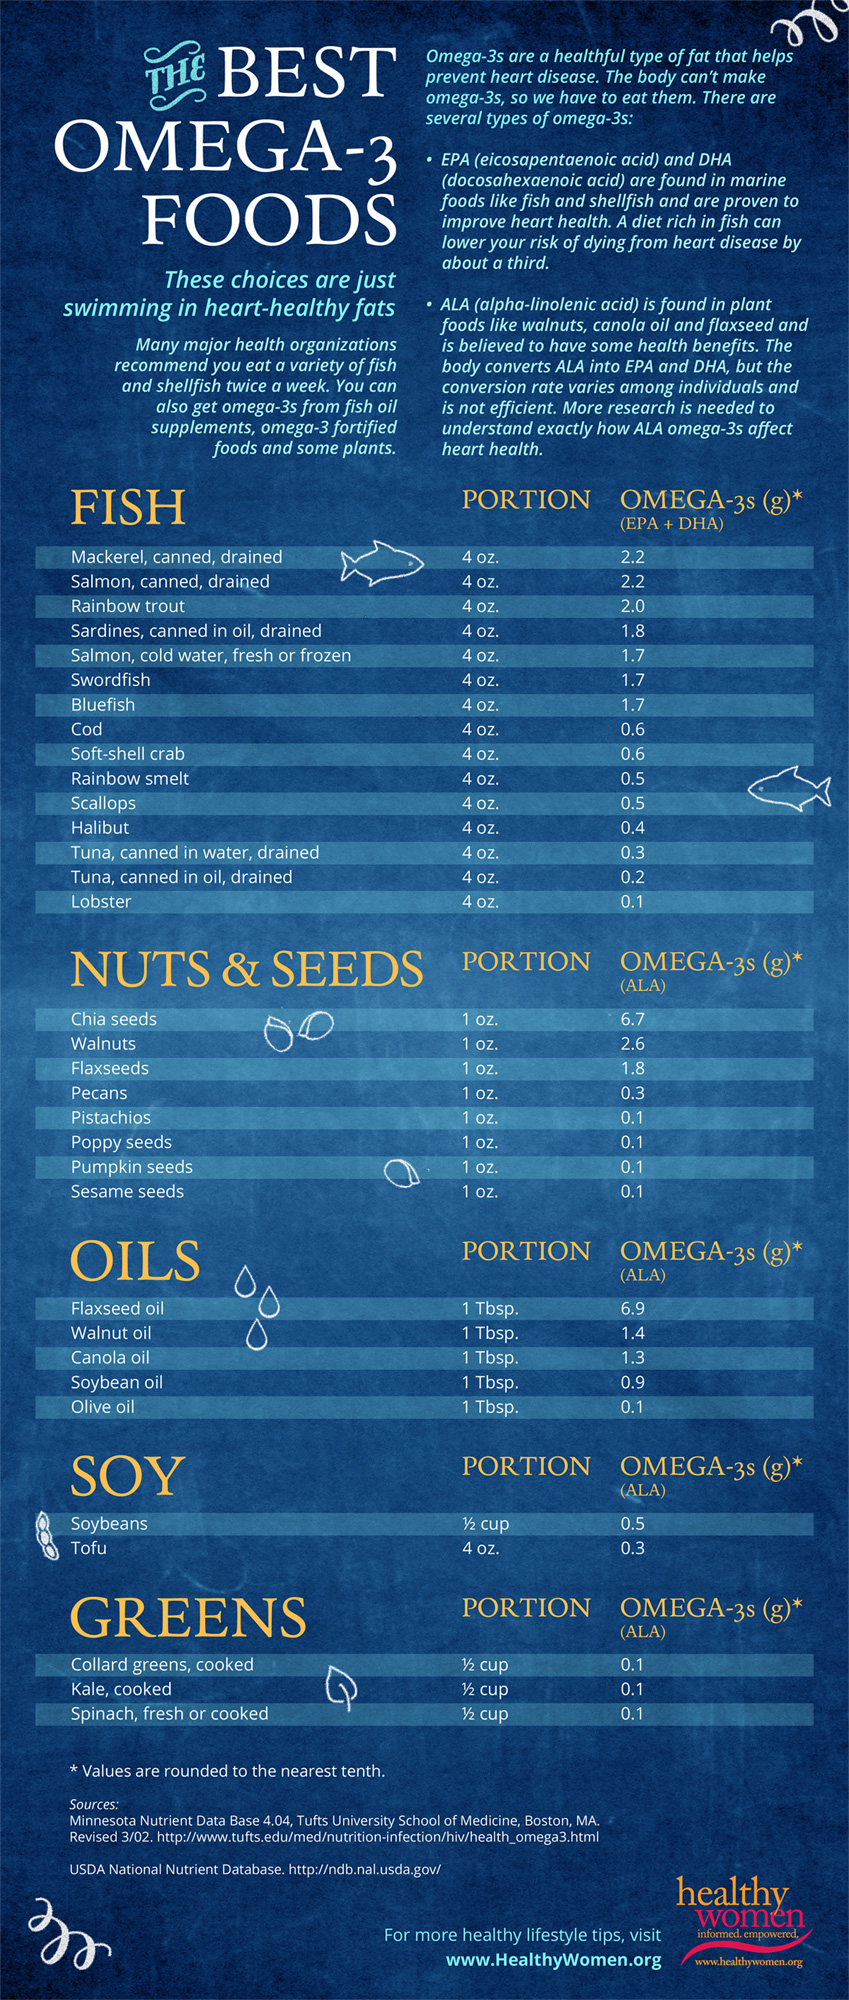 33 Full Of Omega-3 Foods Infographic